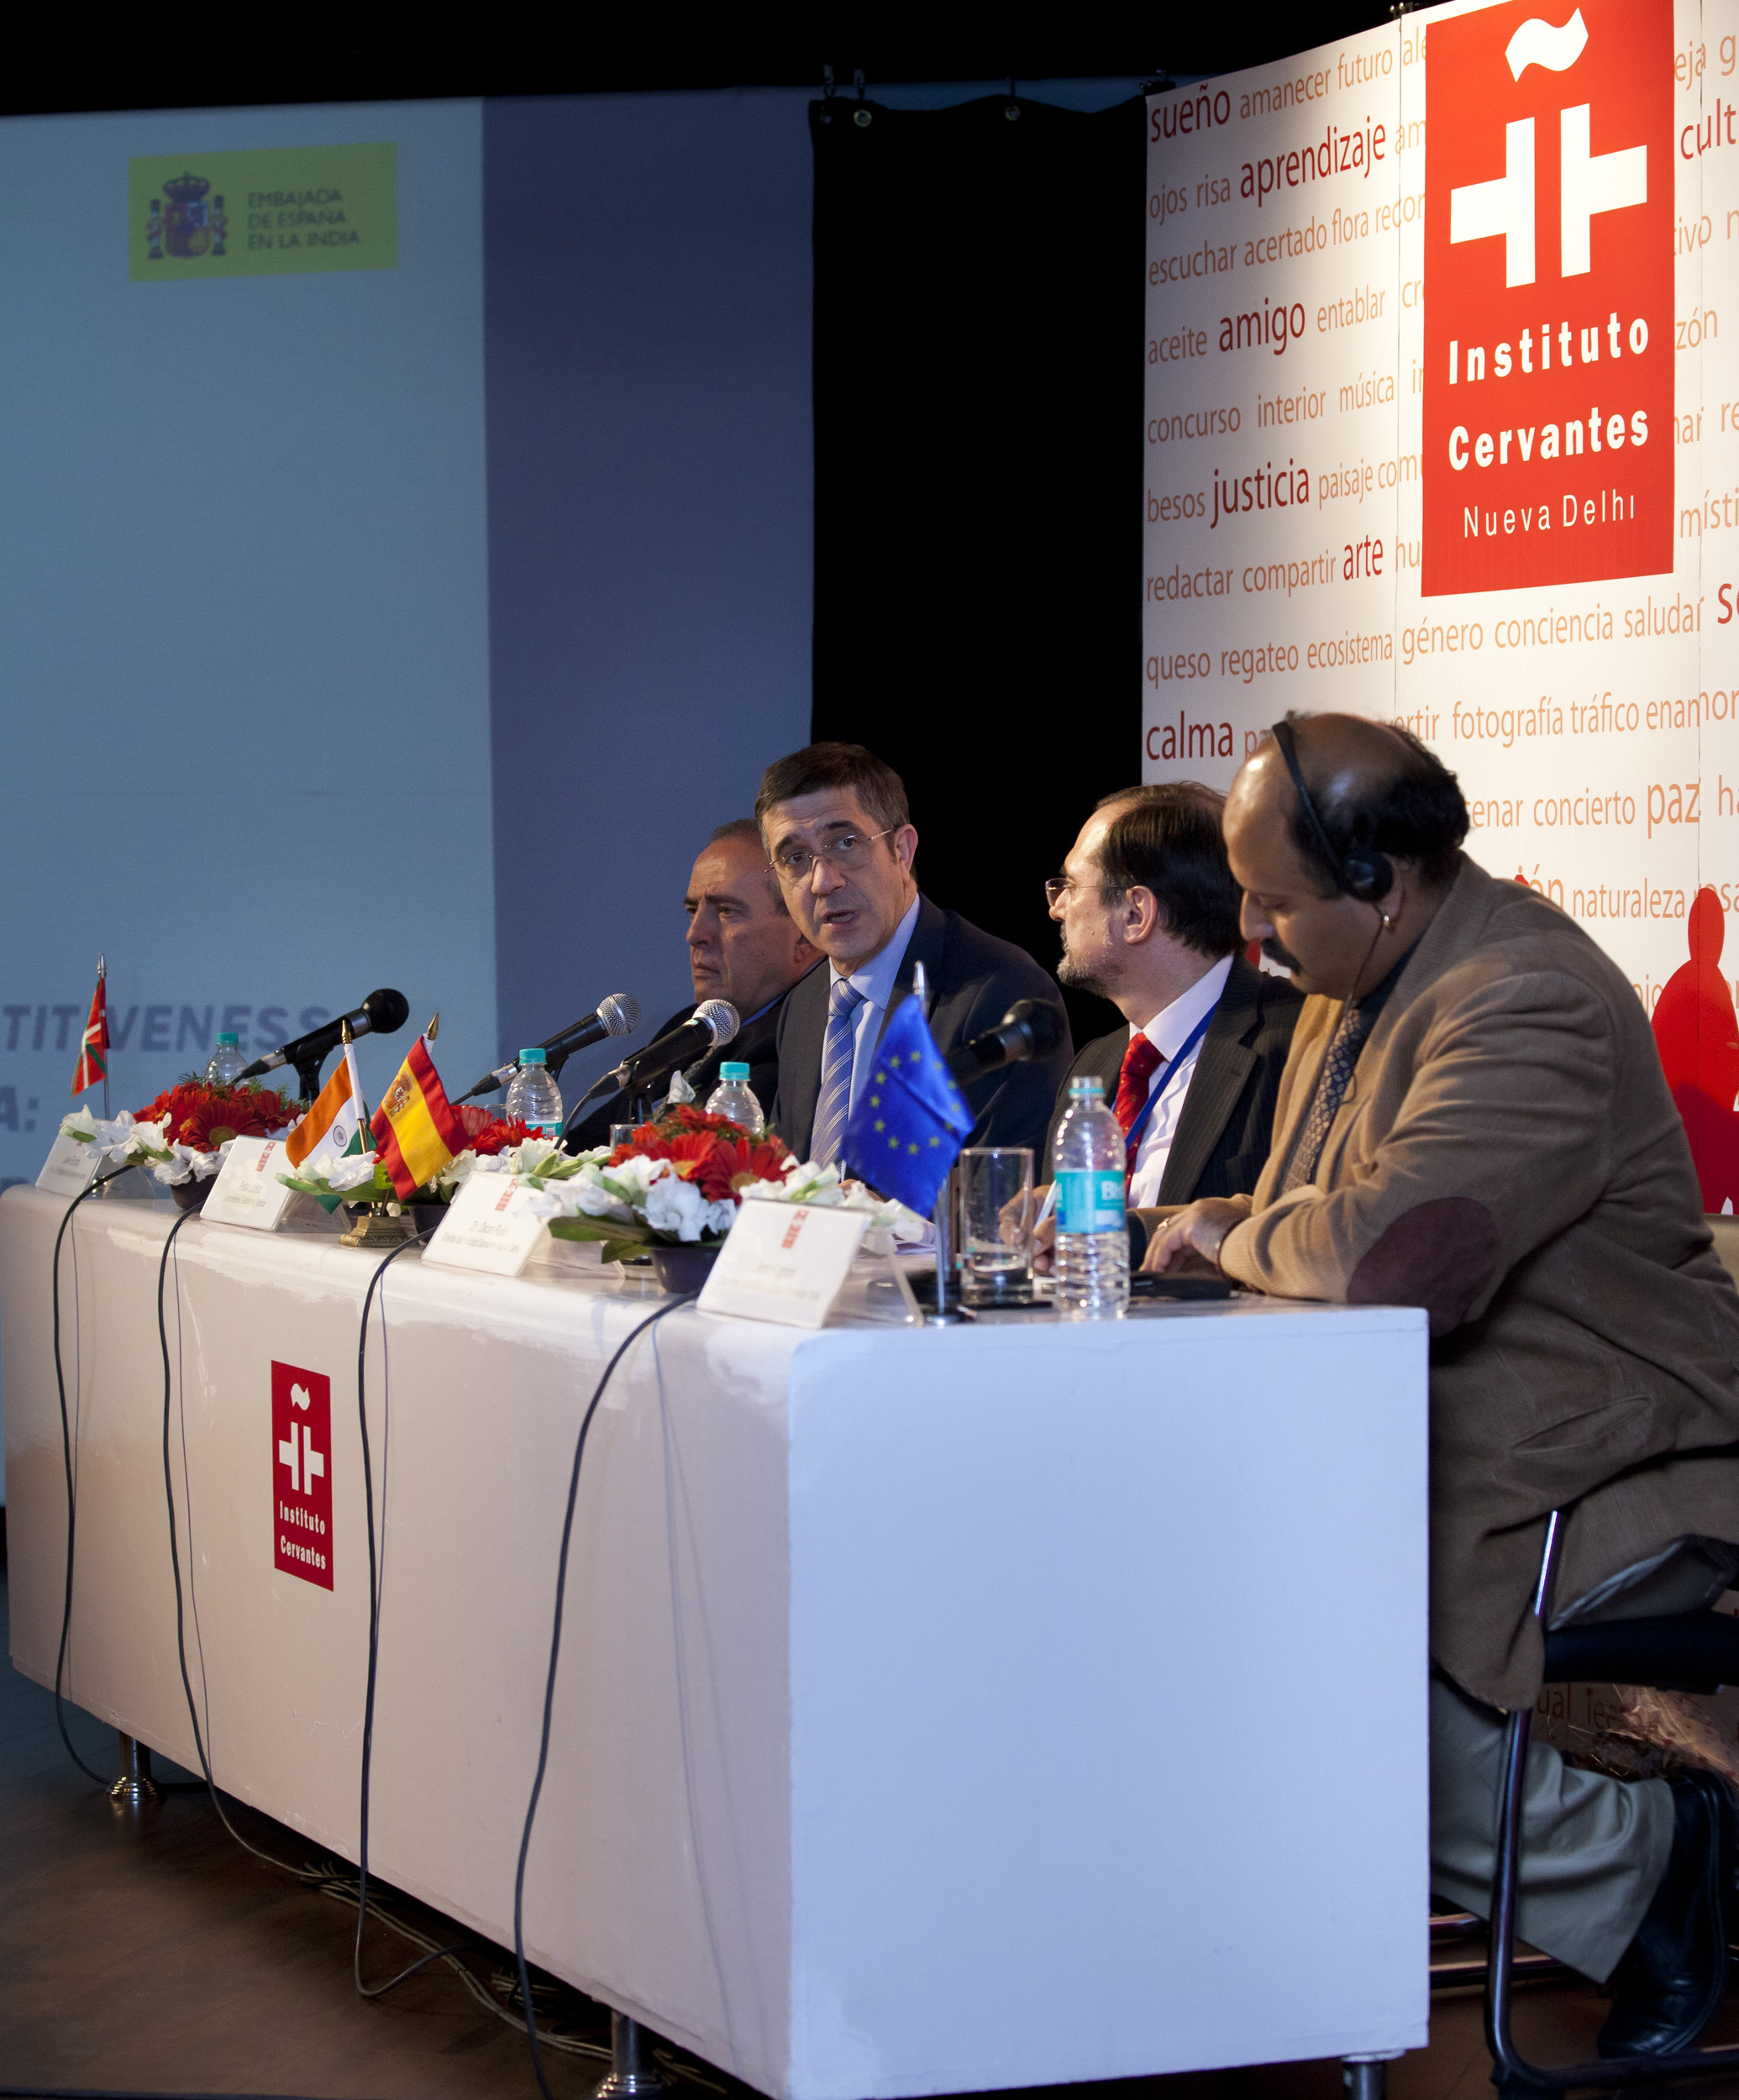 2012_03_21_jornadas4.jpg